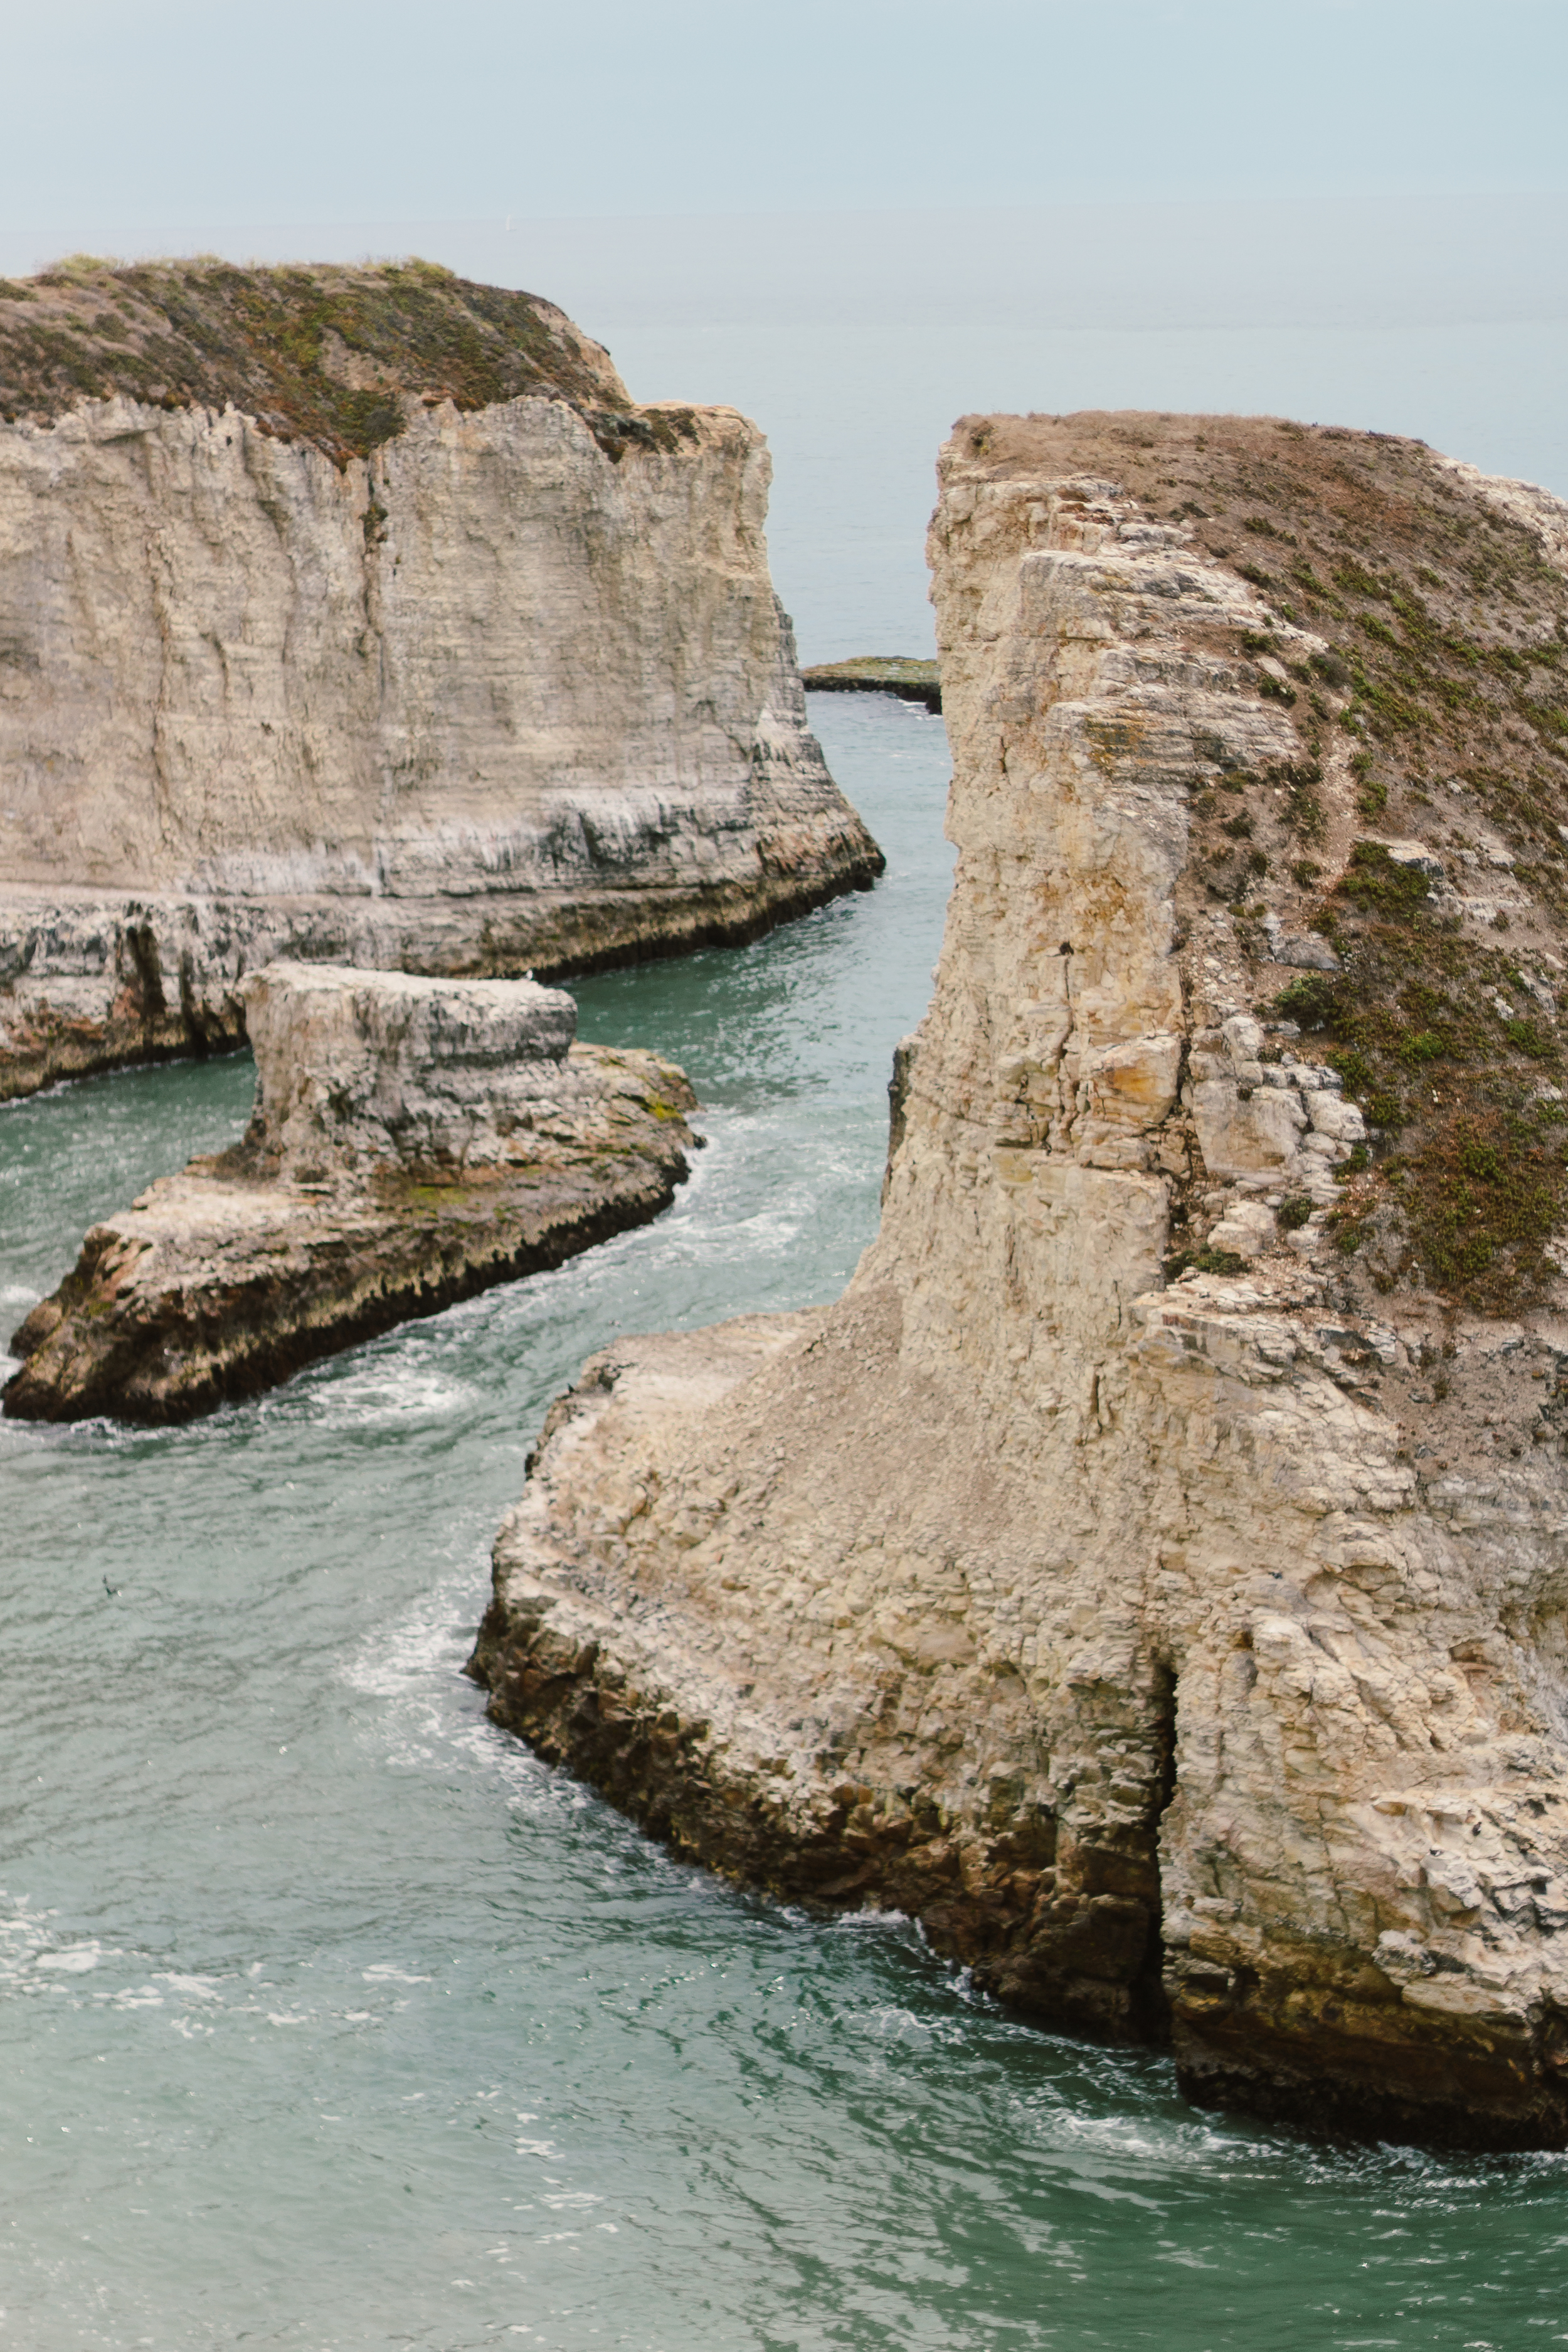 Shark Fin Cove by Catherine Alyce